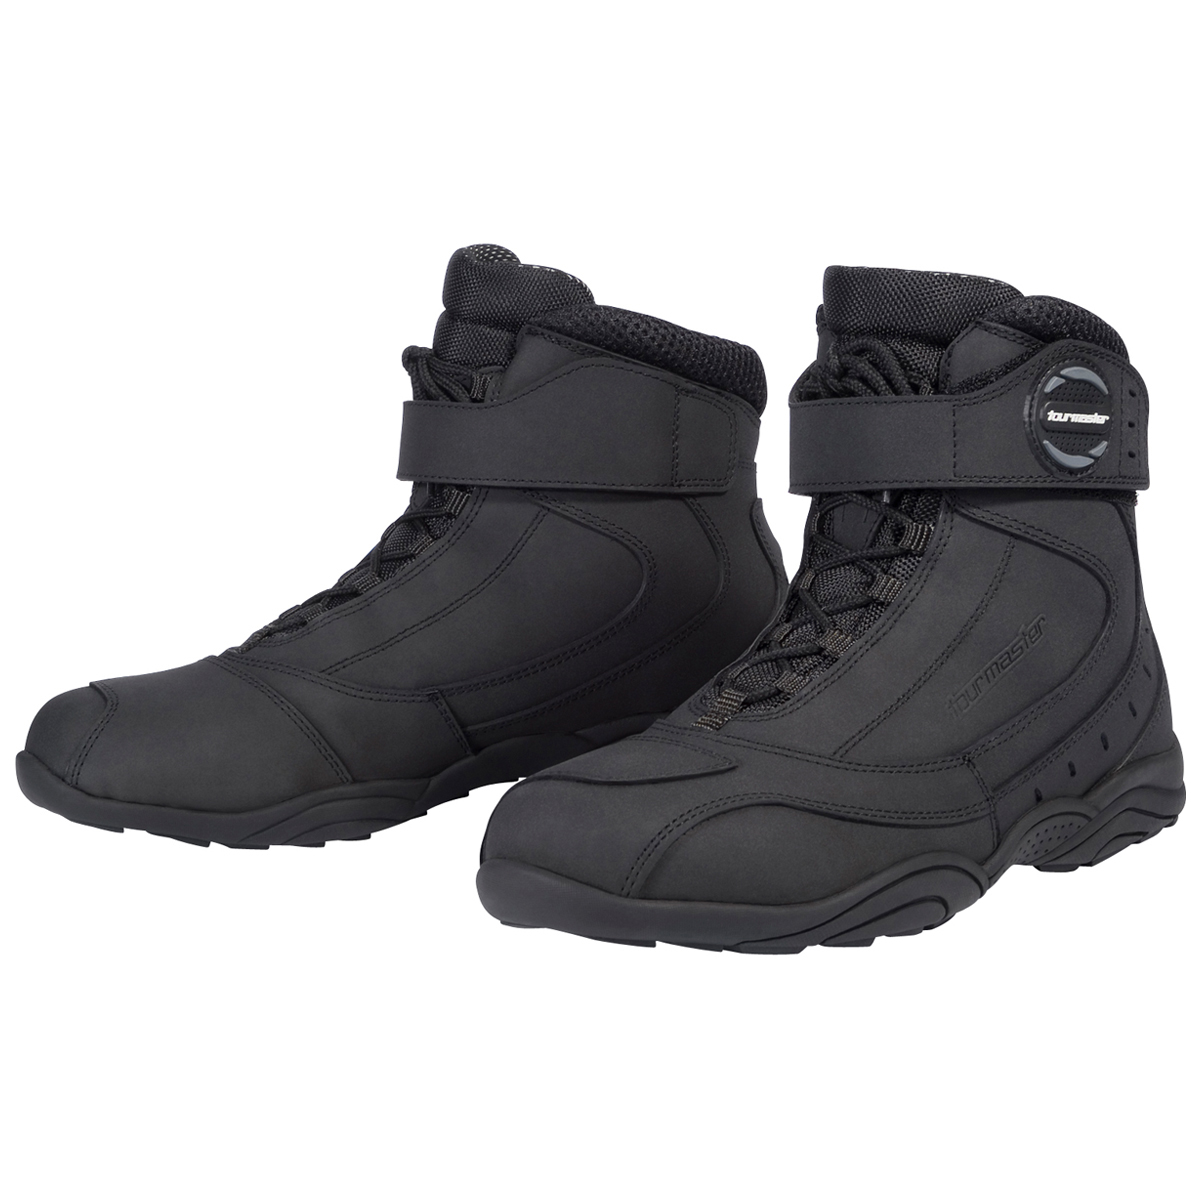 ... tour master response 2.0 waterproof boots ... HUMZIOD